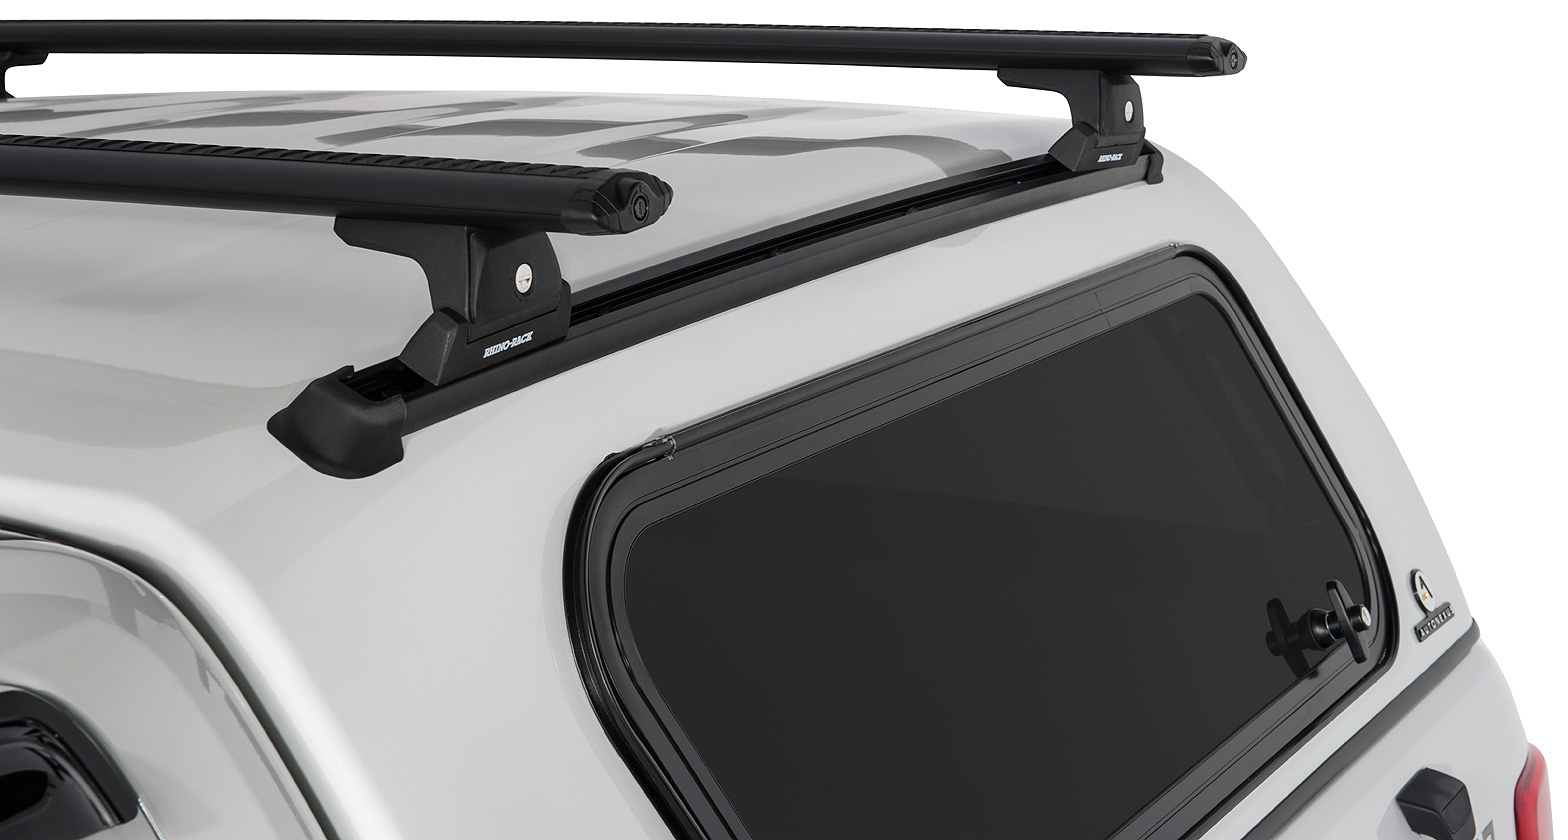 Auto Nexus Canopy - Vortex RLT600 Black 2 Bar Roof Rack | Rhino-Rack & Vortex RLT600 Canopy Roof Rack | Rhino-Rack